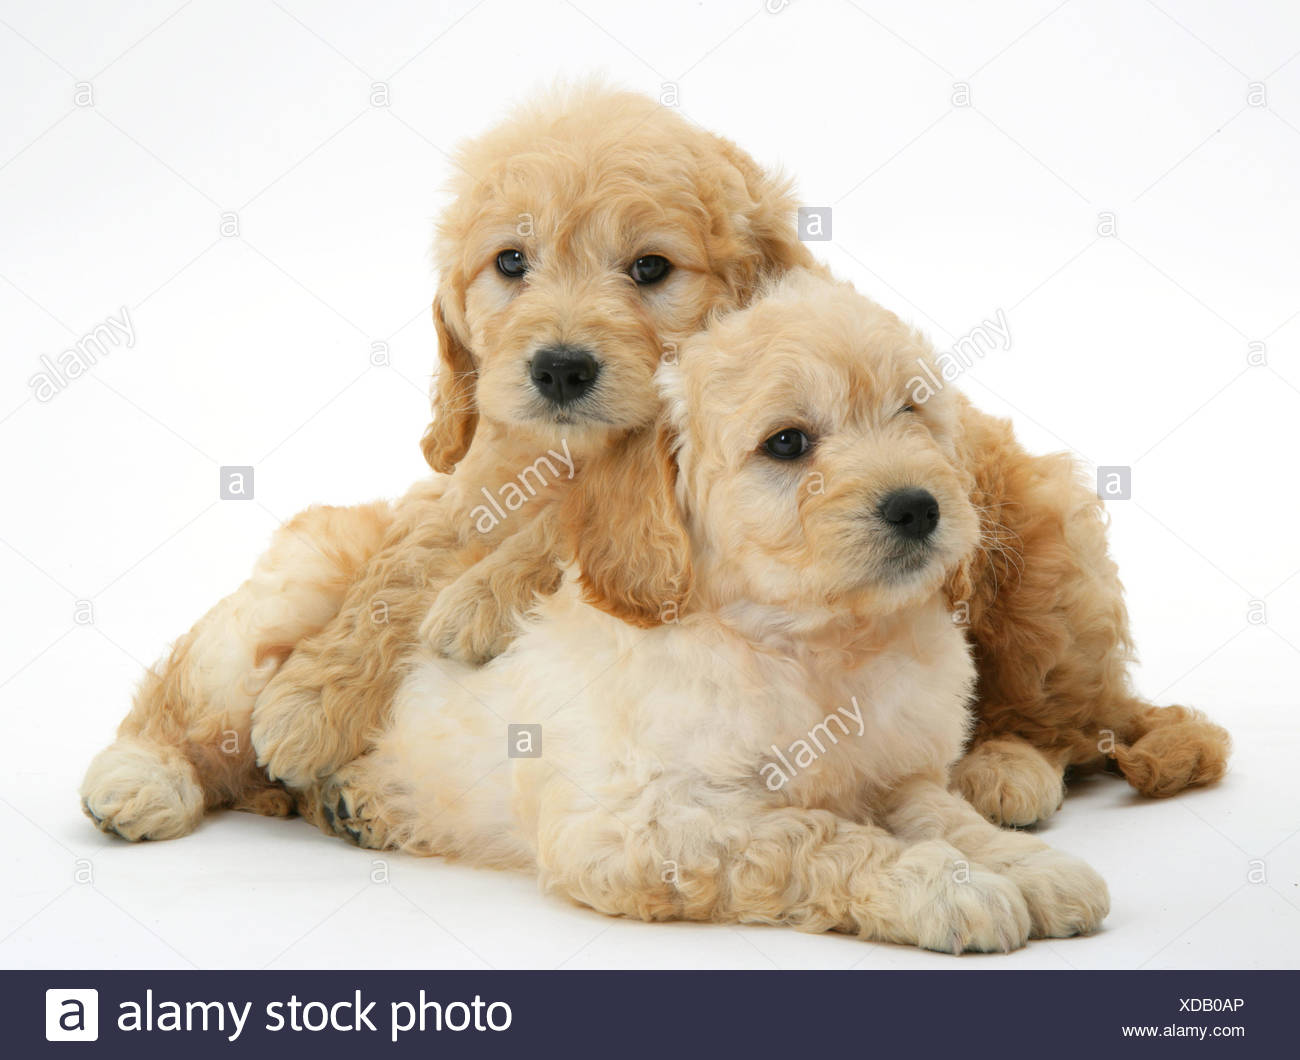 Two Miniature Goldendoodle Puppies Golden Retriever X Miniature Poodle Cross 7 Weeks One Lying Across The Other Stock Photo Alamy